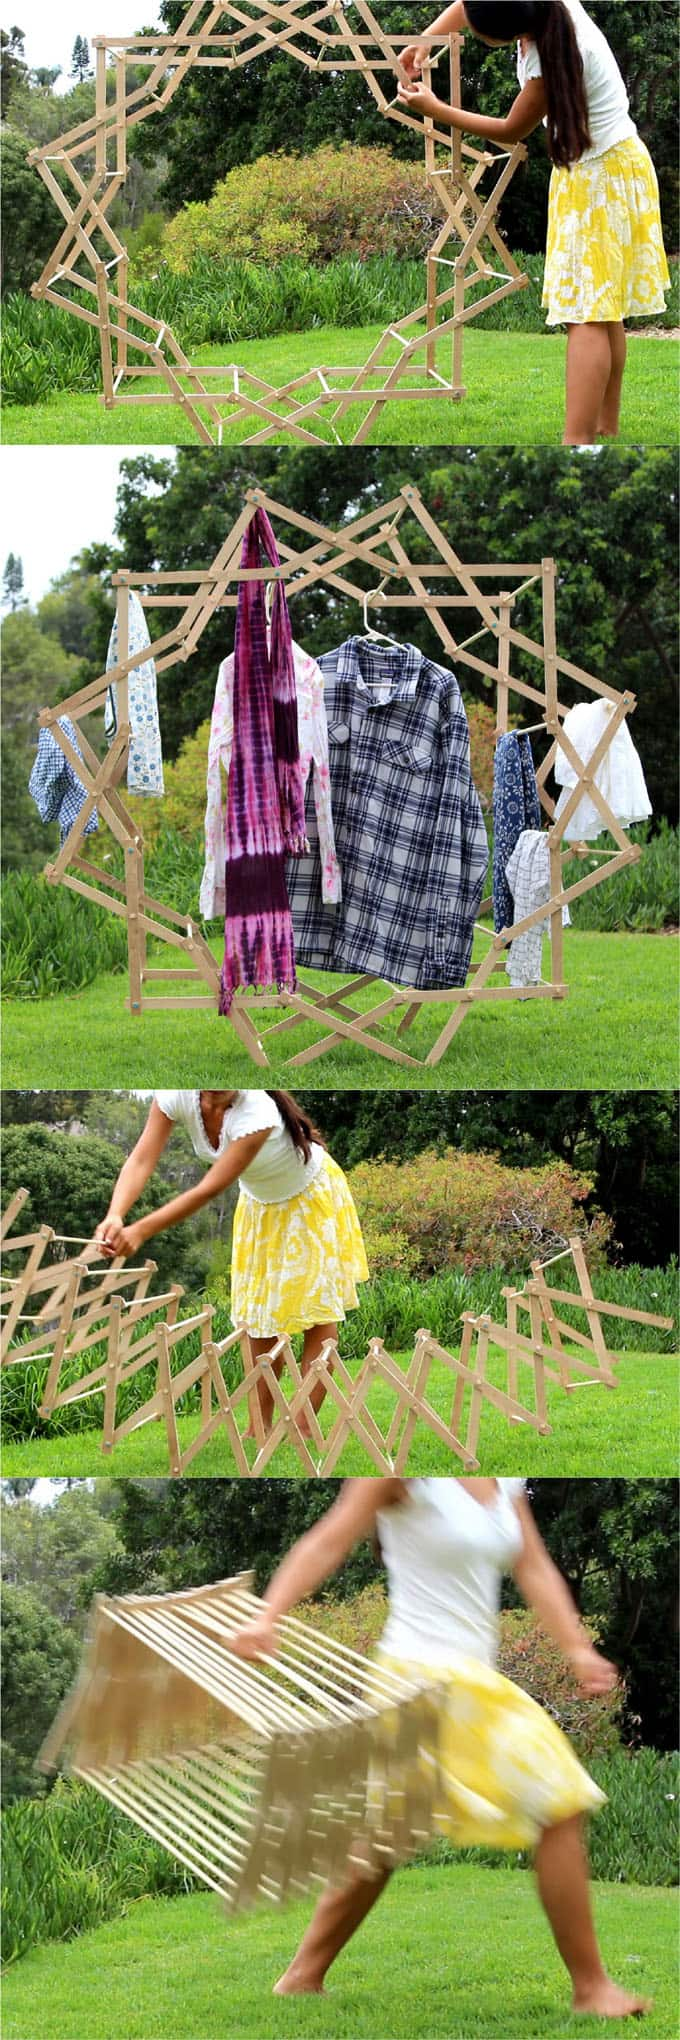 star-shaped-clothes-drying-rack-apieceofrainbowblog (1)